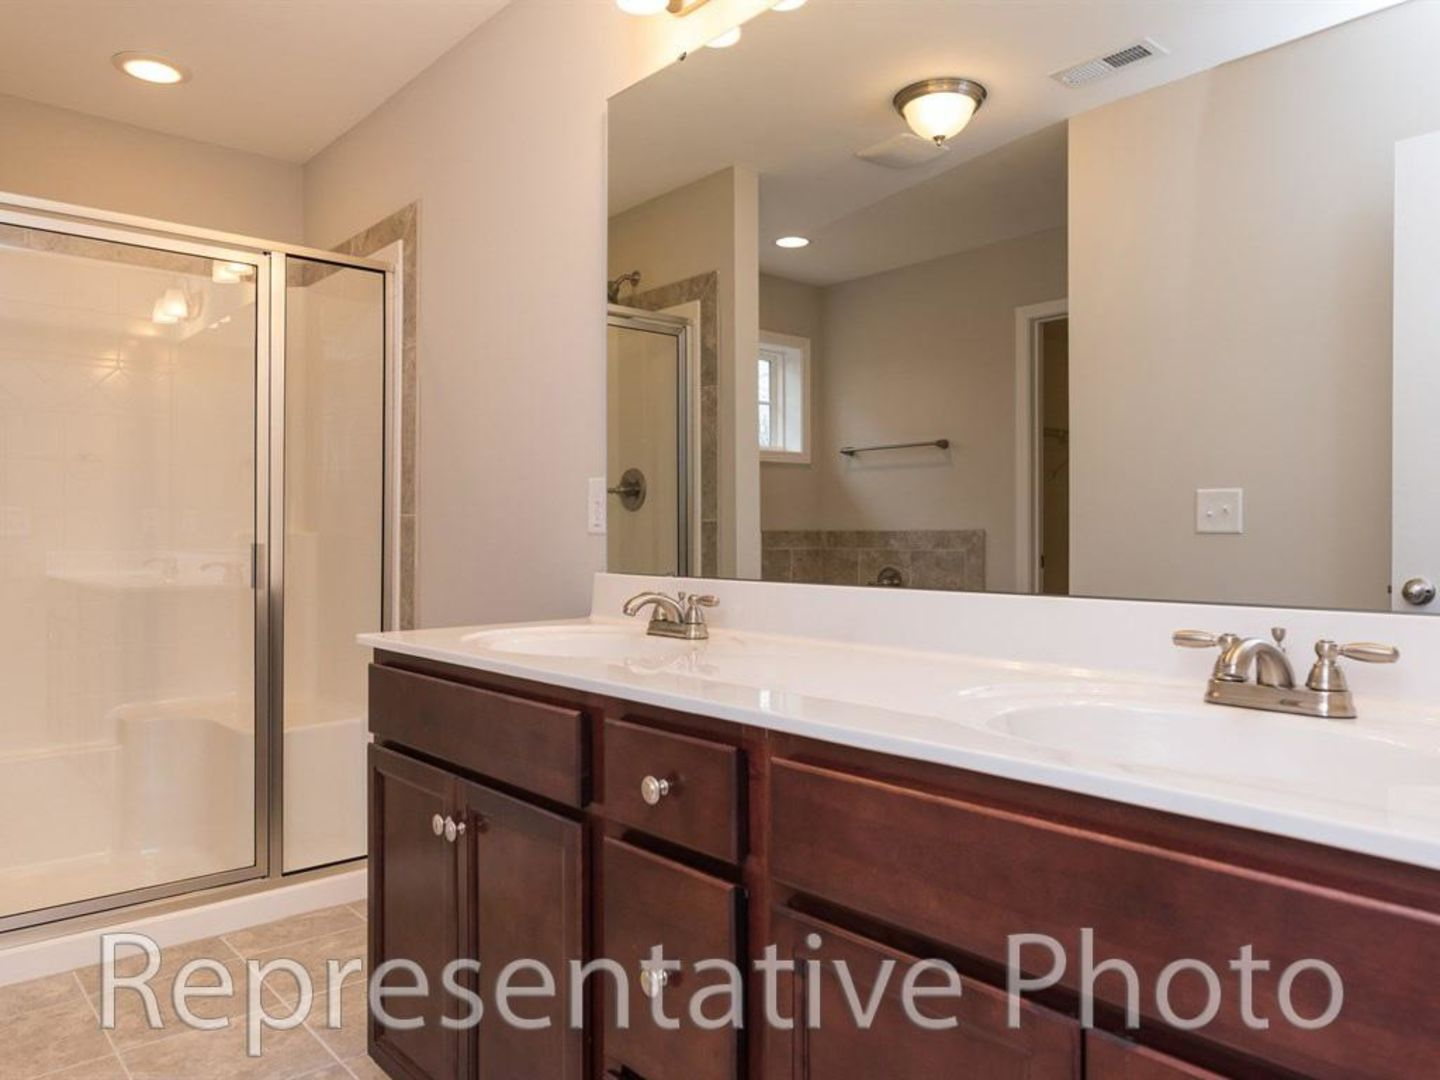 Bathroom featured in the Wilmington 2865 By HH Homes in Raleigh-Durham-Chapel Hill, NC